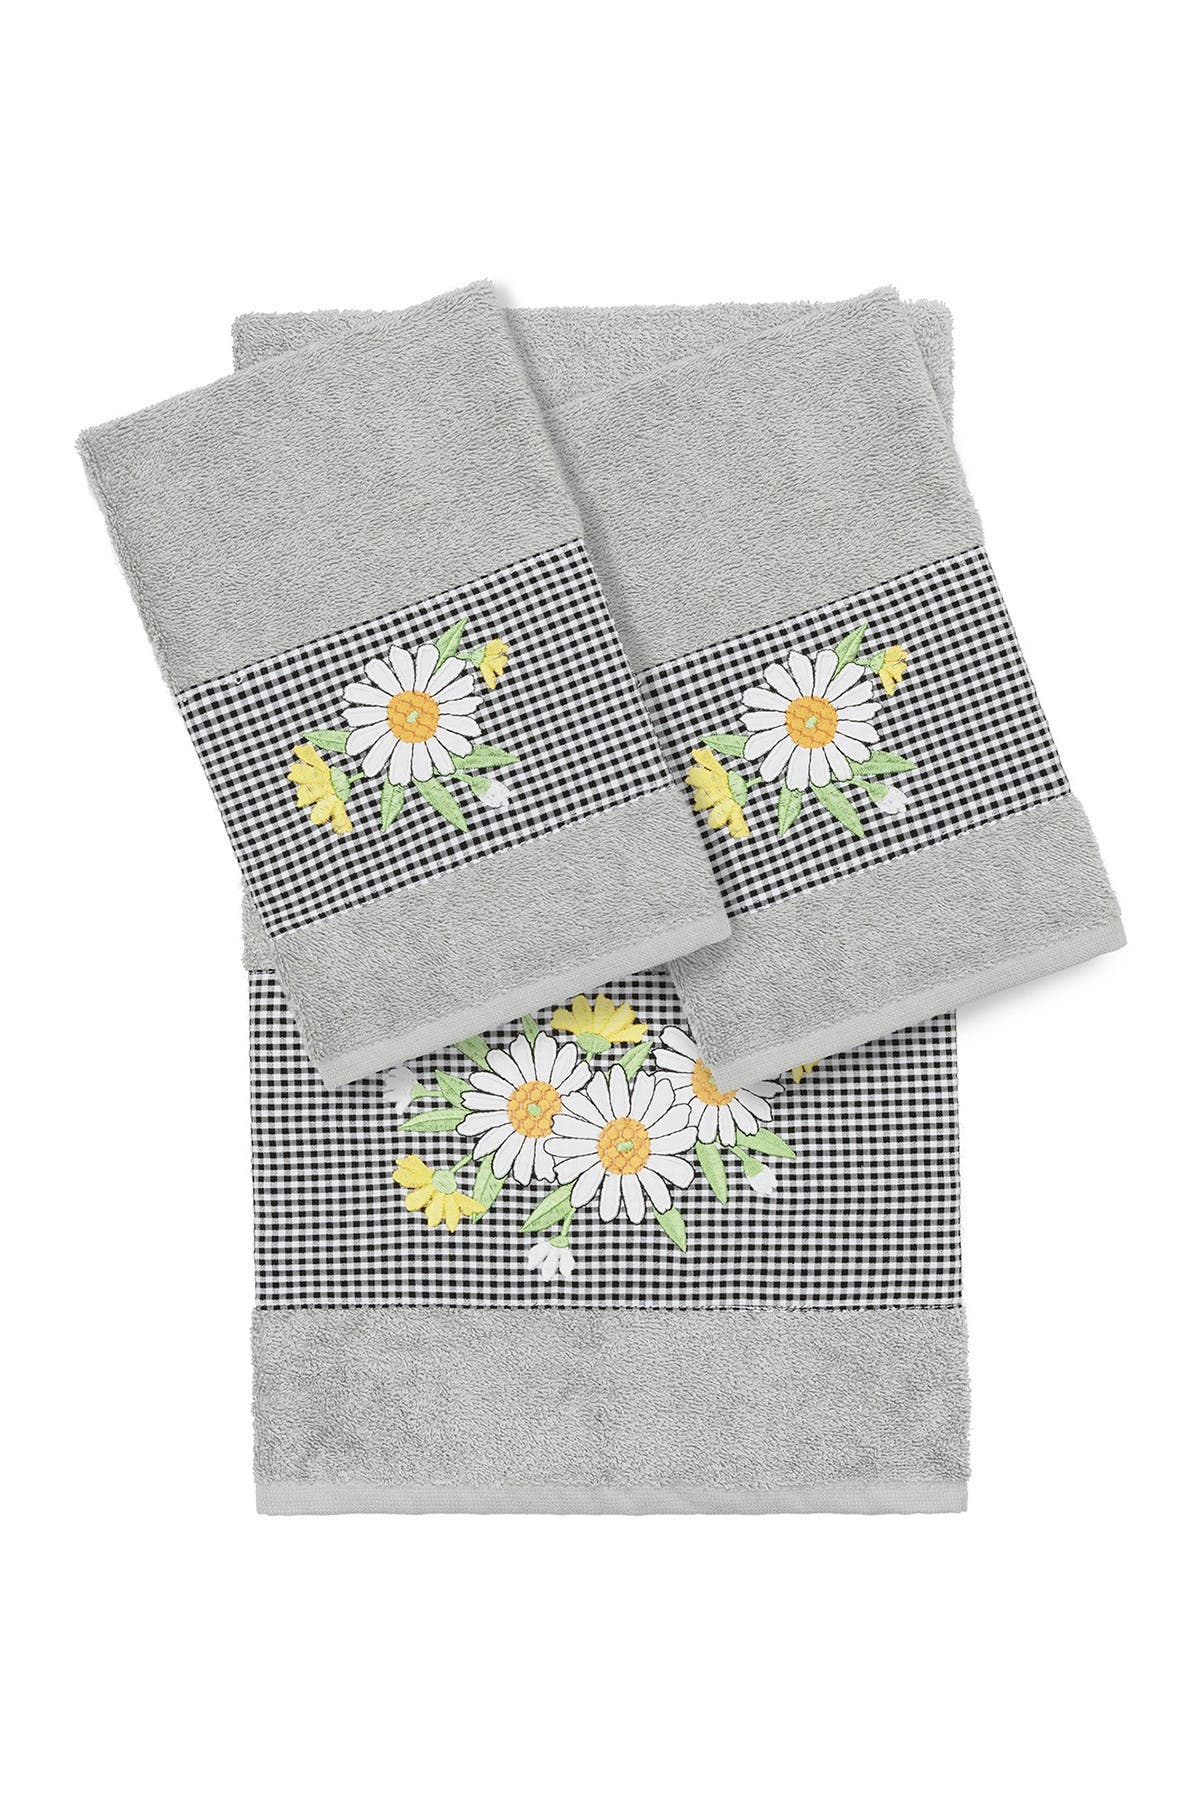 Image of LINUM HOME Daisy 3-Piece Embellished Towel - Light Gray